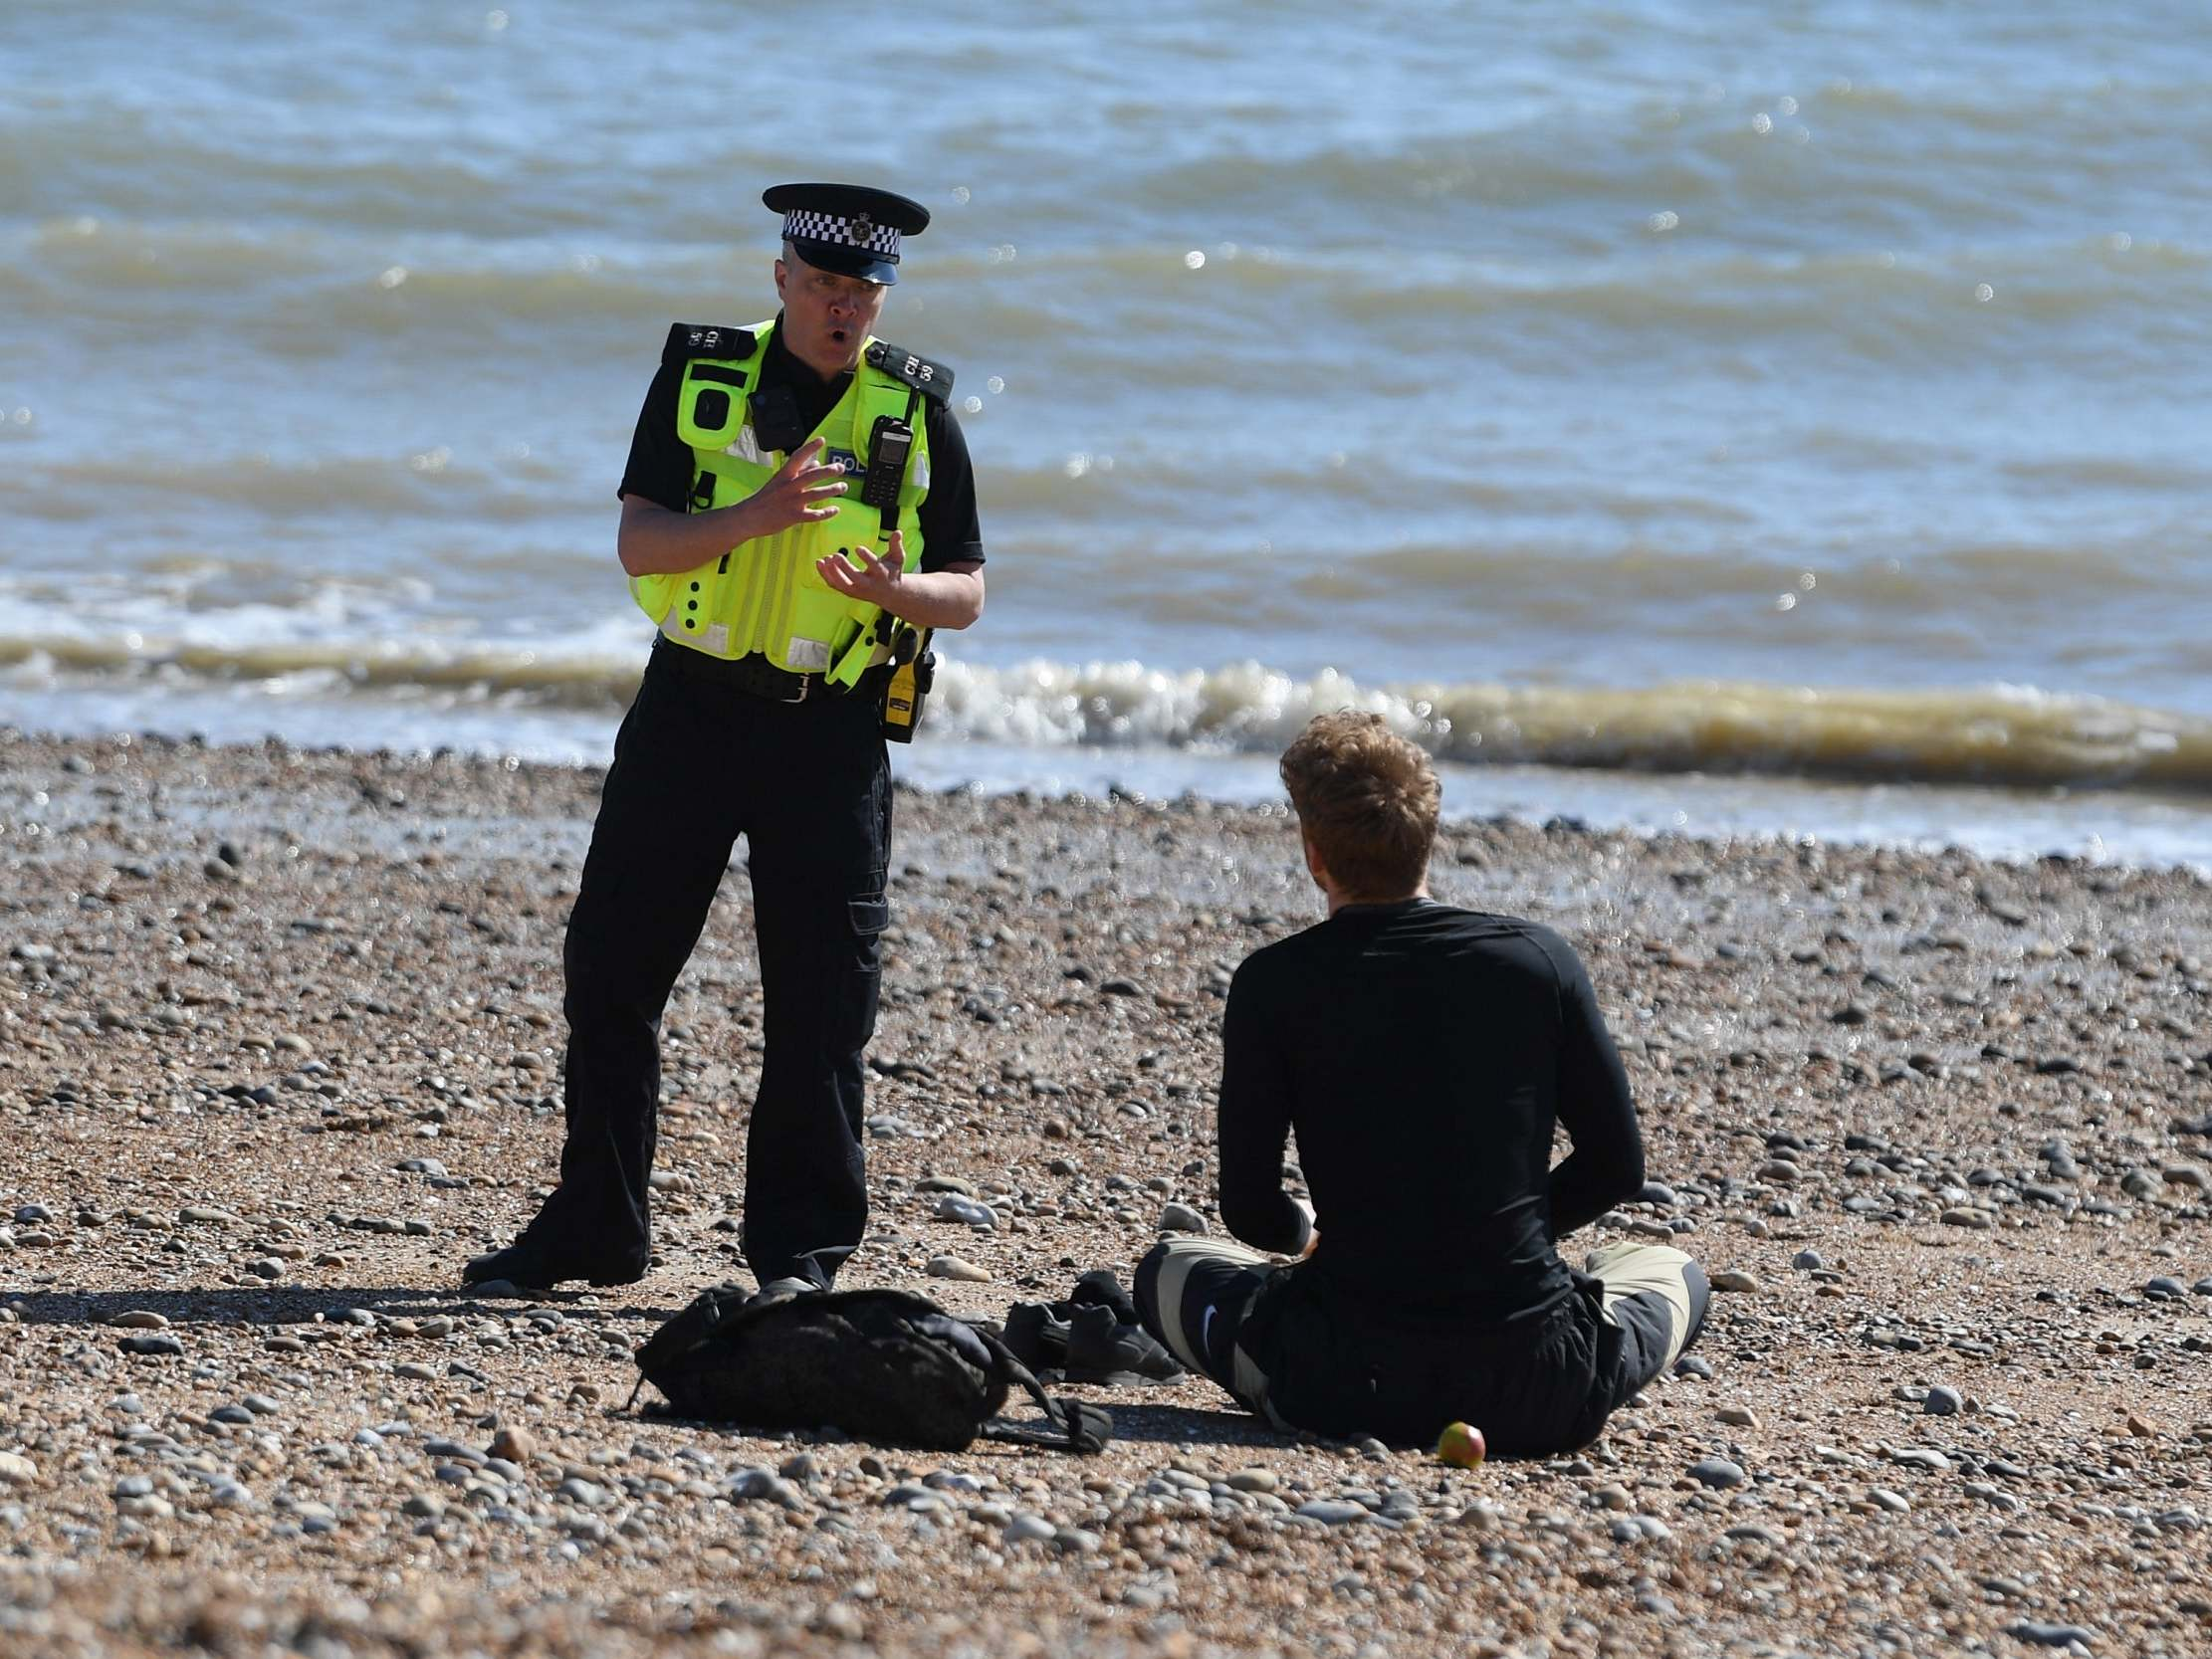 People seen flouting coronavirus lockdown by sunbathing and going for picnics, prompting police warning - The Independent